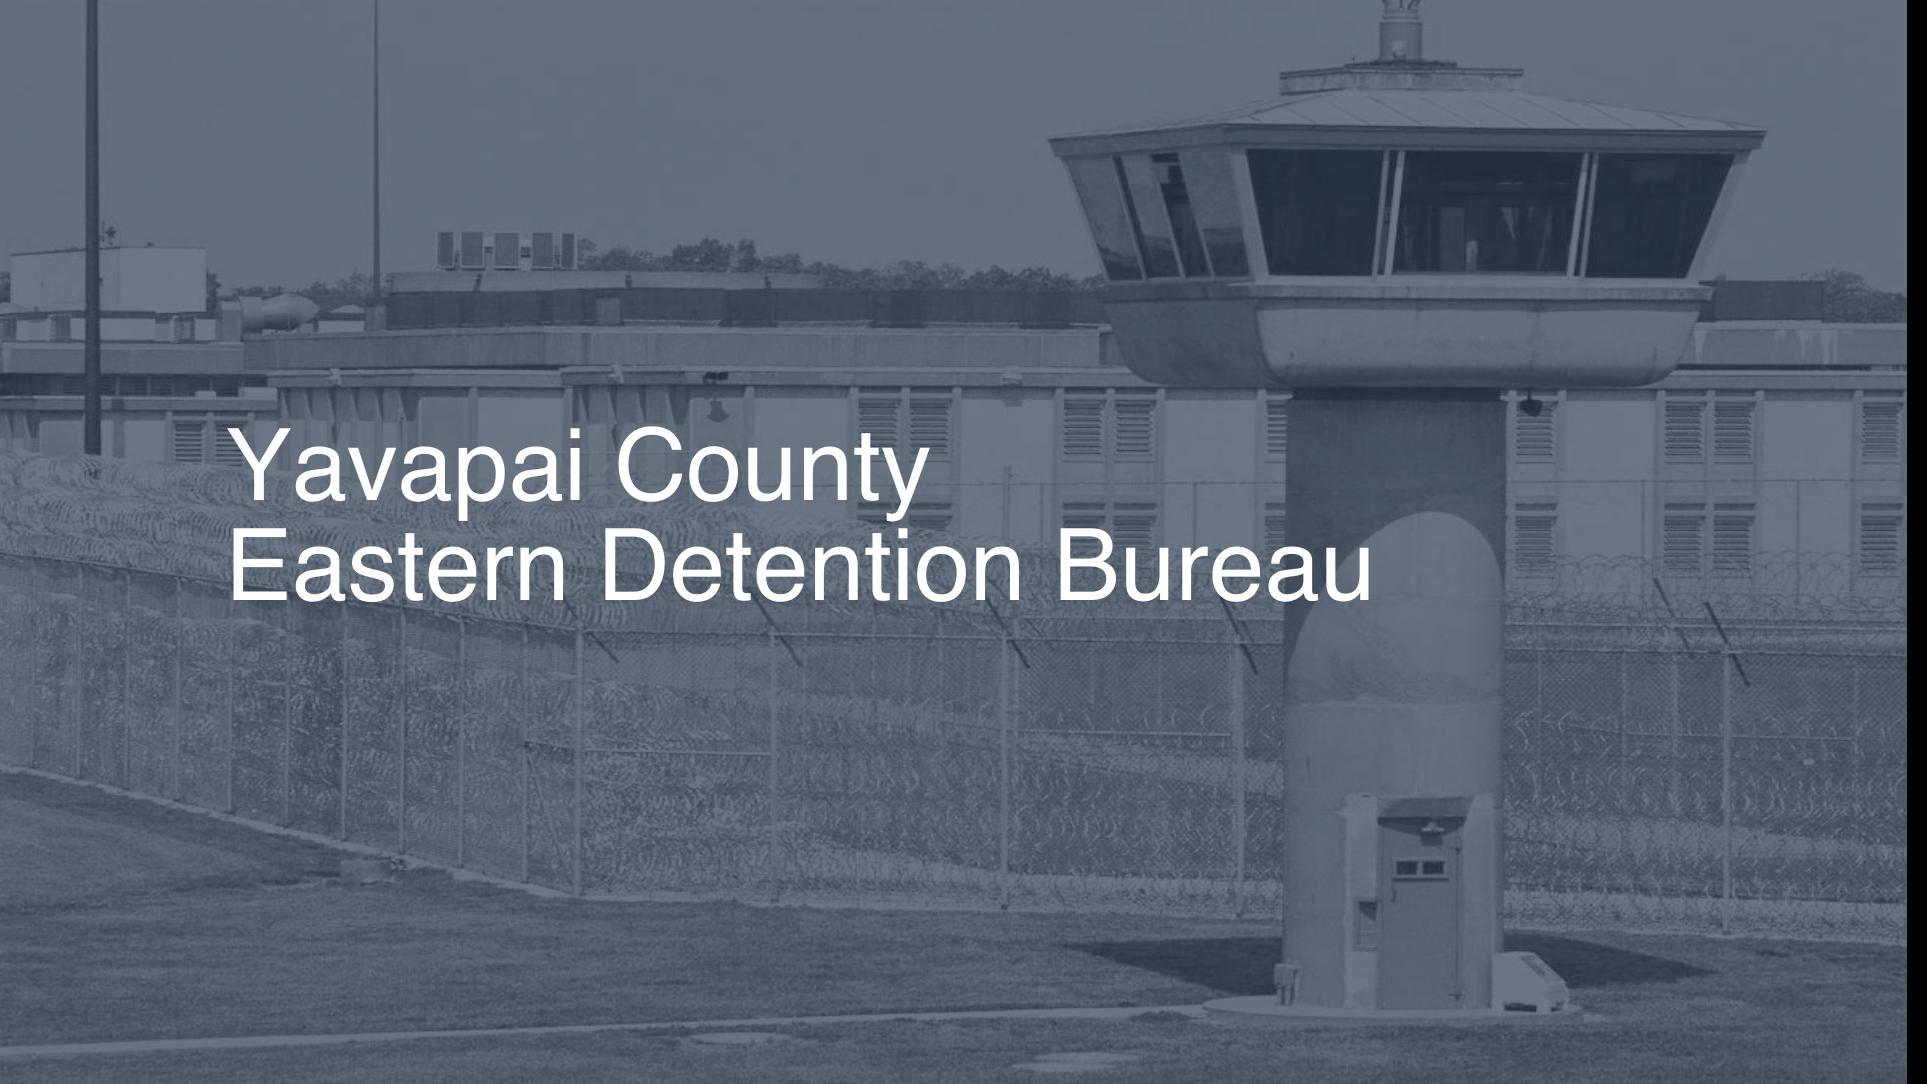 Yavapai County Eastern Detention Bureau | Pigeonly - Inmate